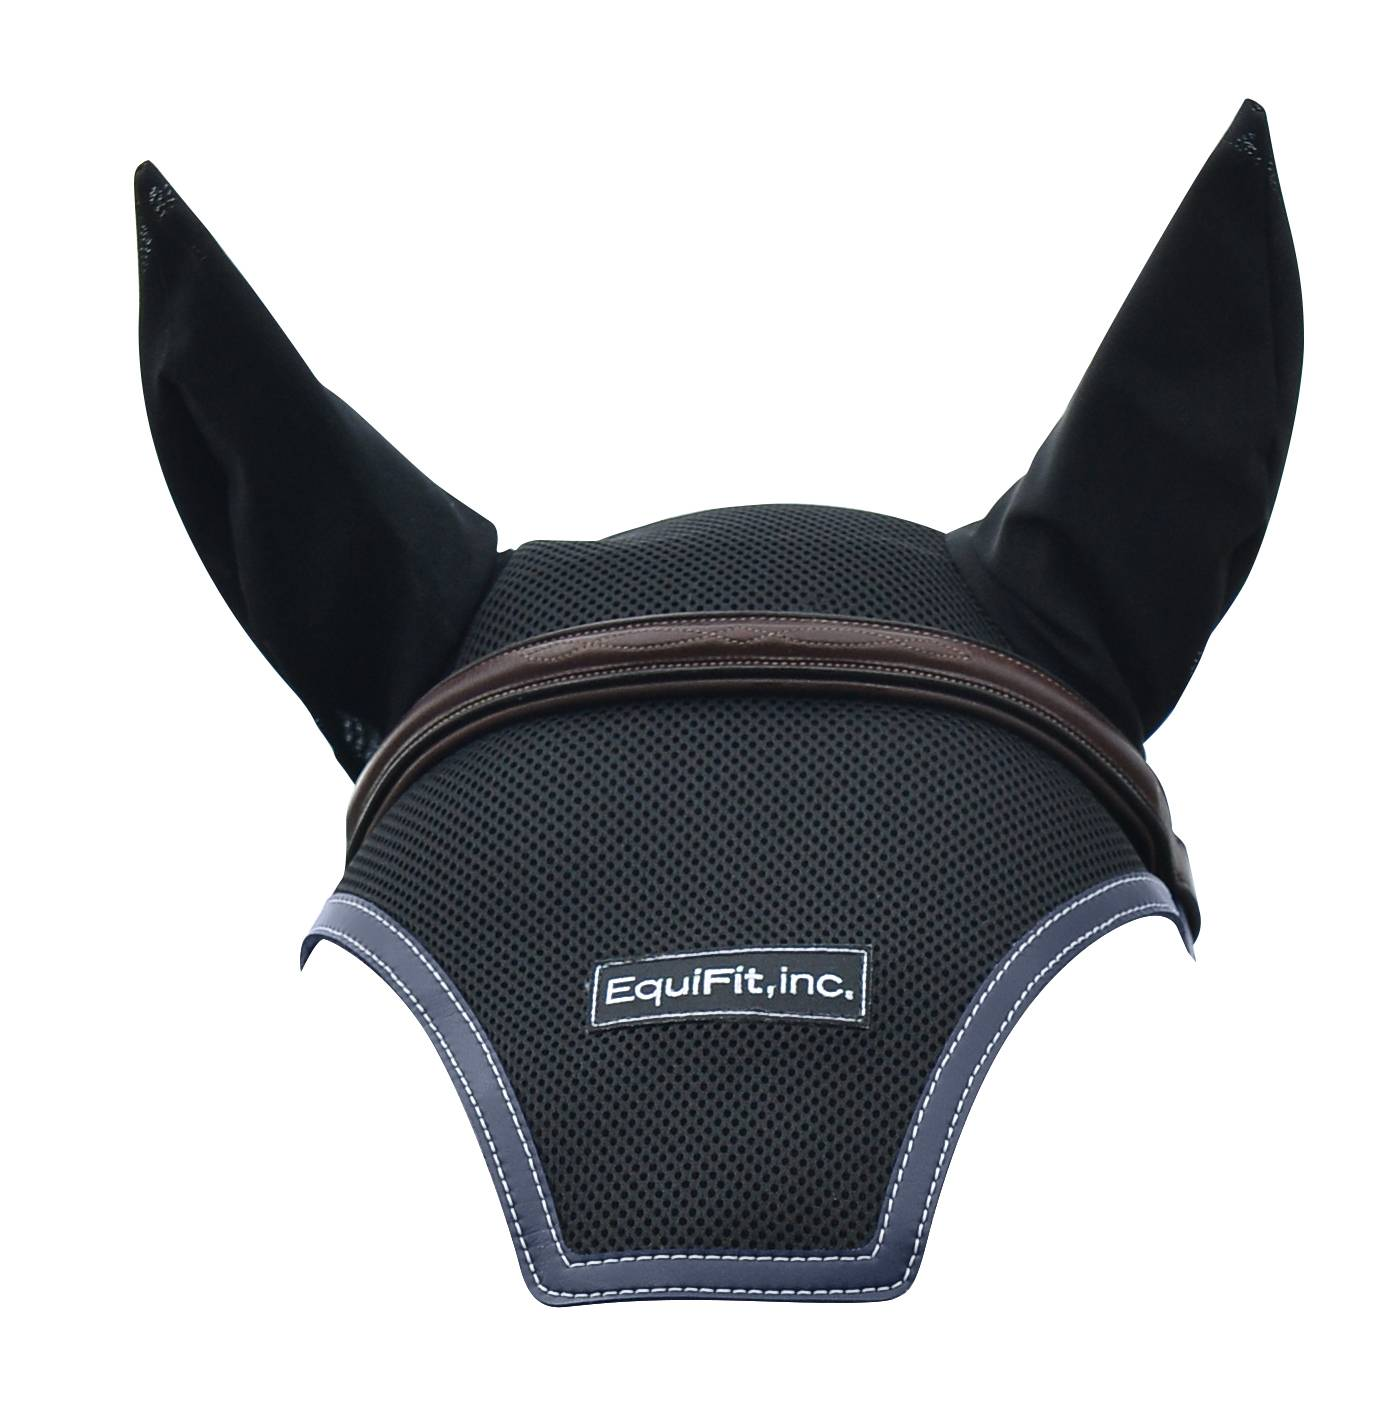 Equifit Logo Ear Bonnet With Colored Trim